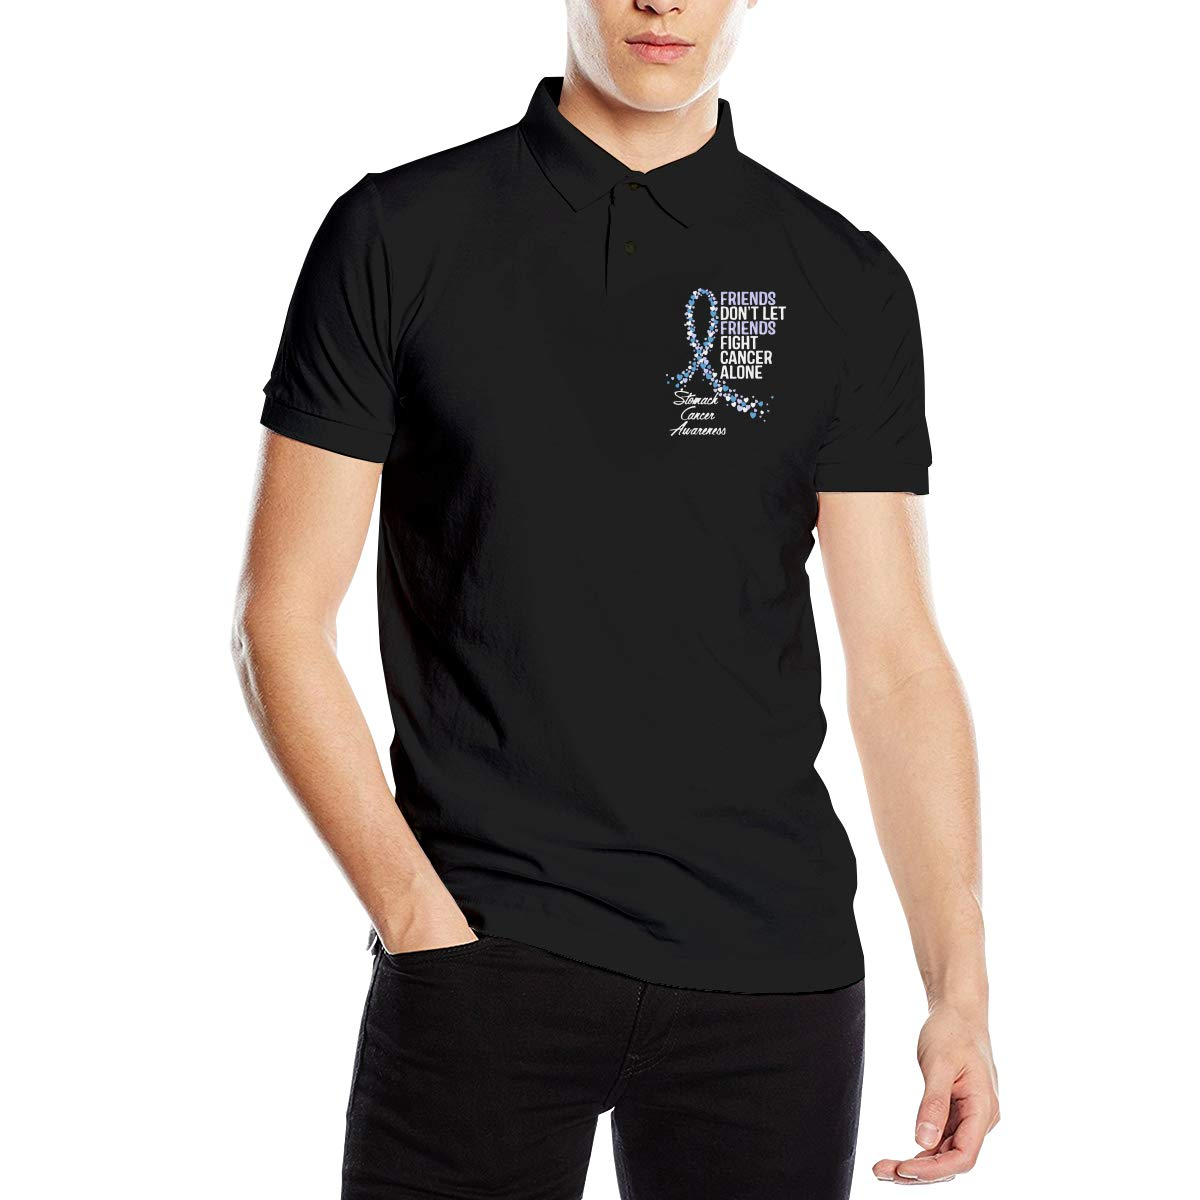 POJing-Q74 Dont Let Fight Cancer Alone Mens Basic Designed Short Sleeve Polo Shirt Black